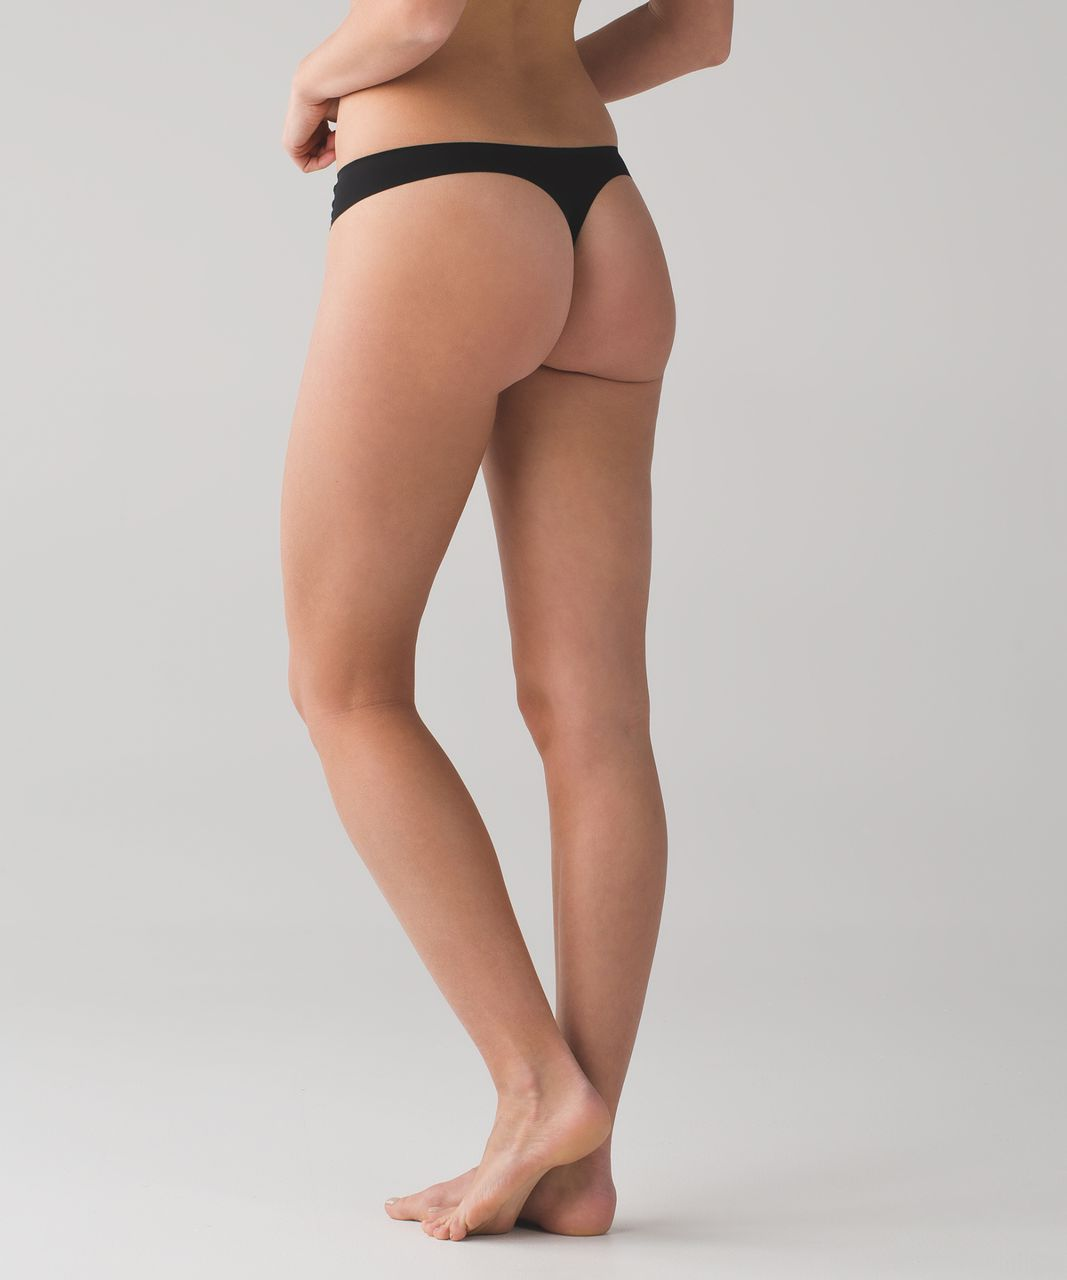 Lululemon Namastay Put Thong - Black